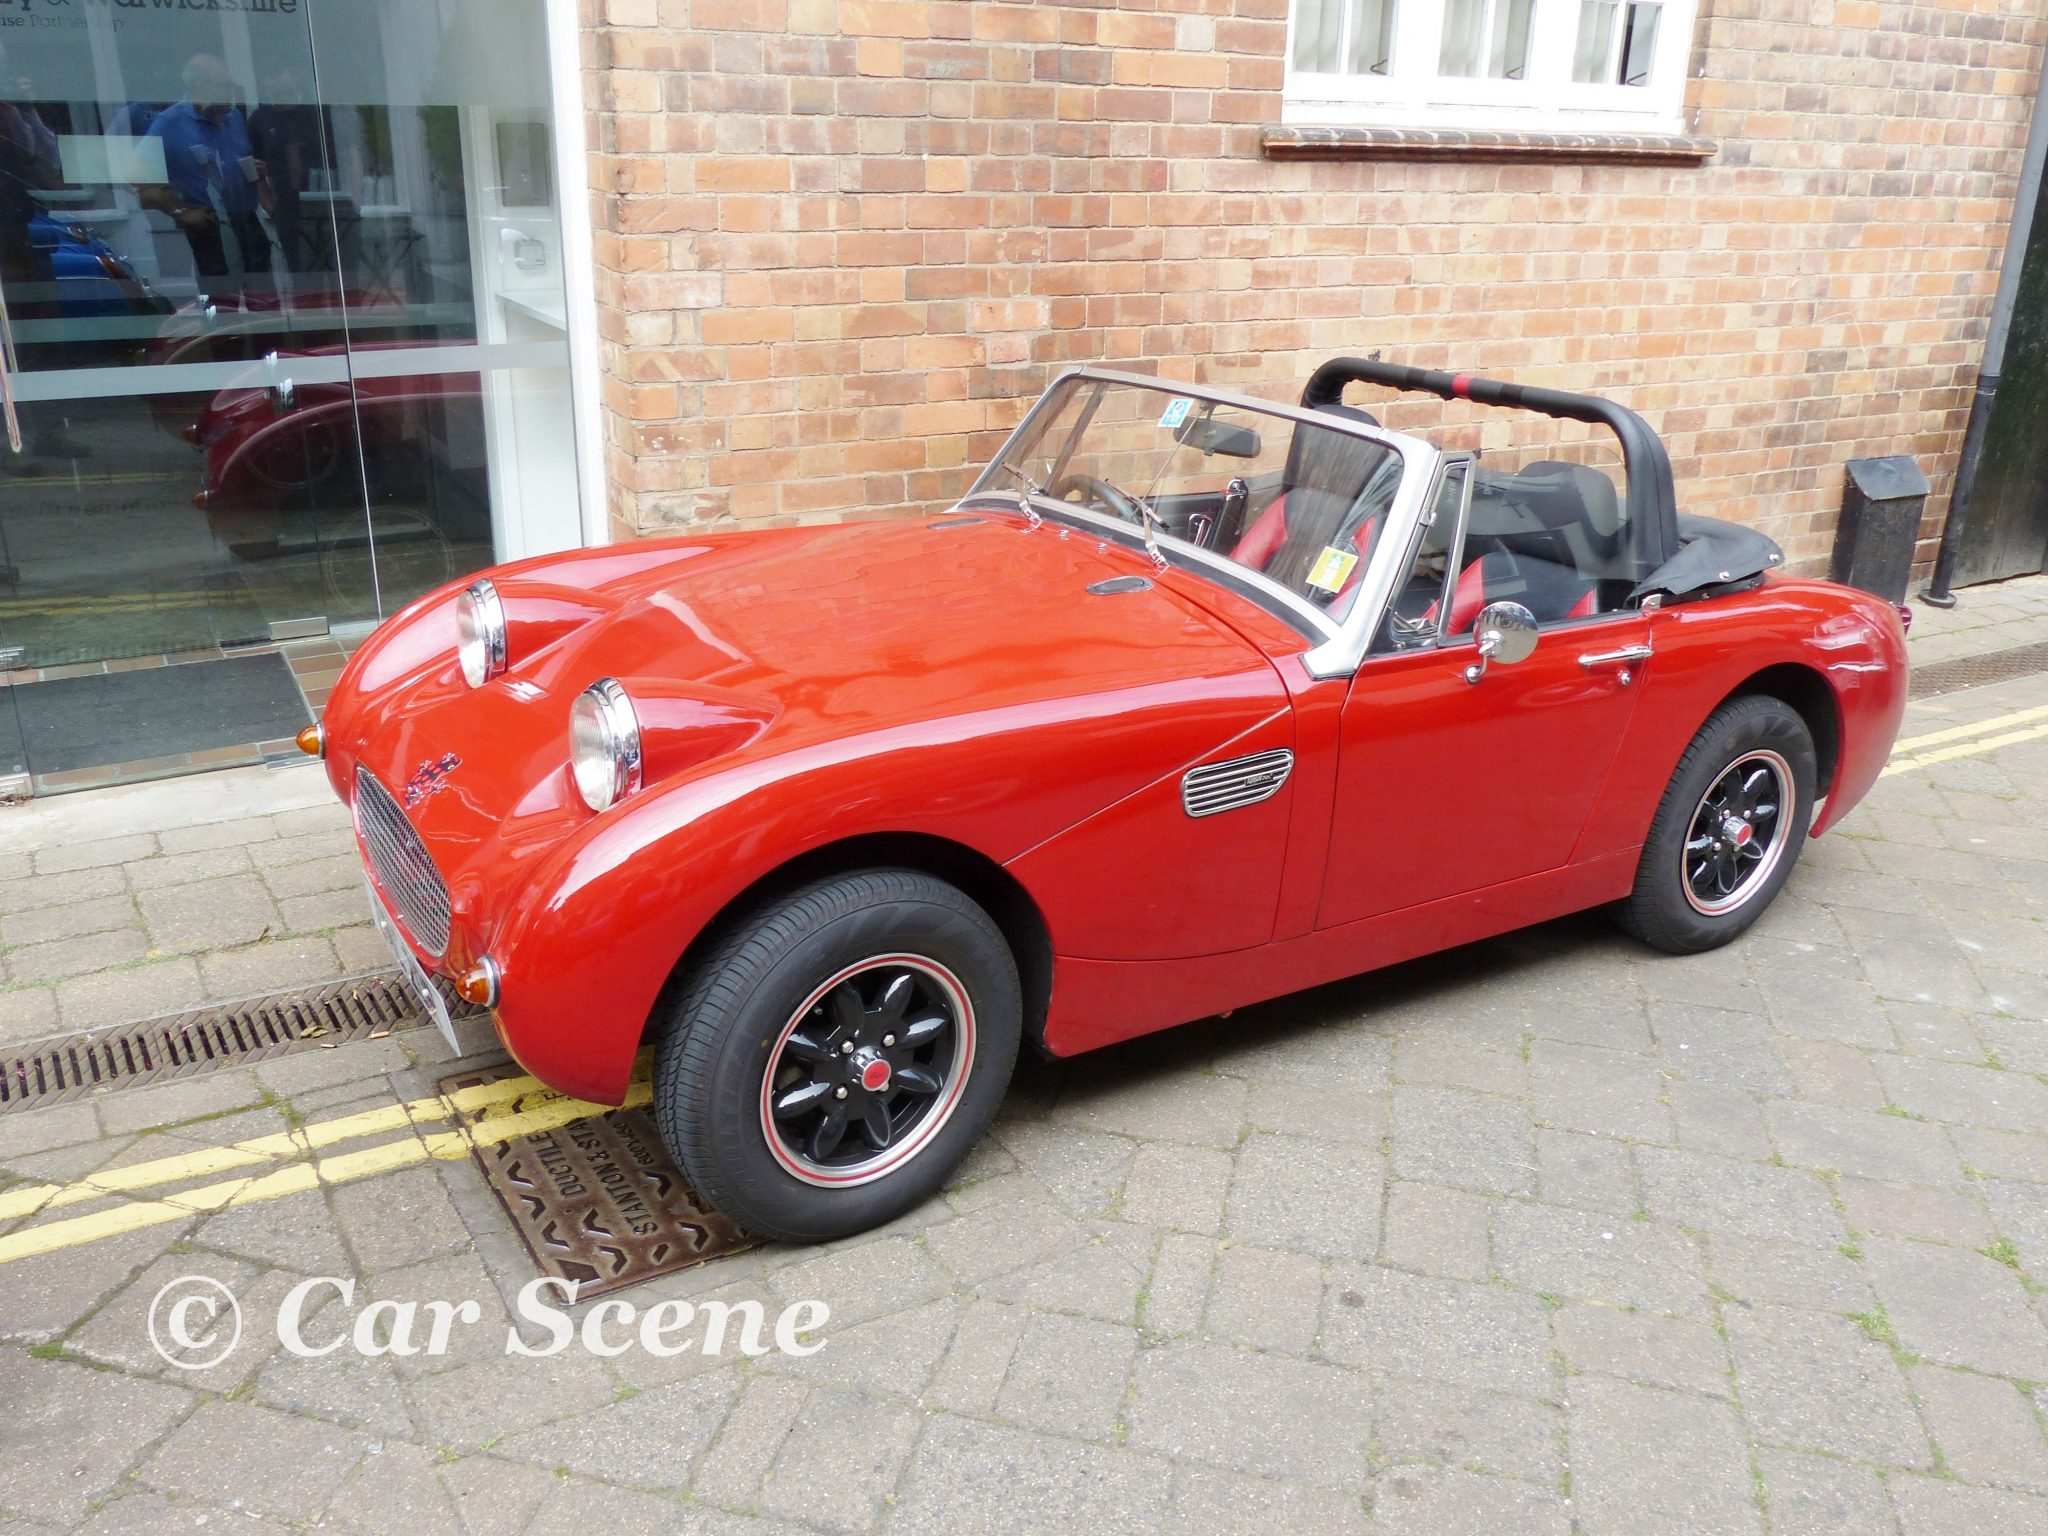 Mk1 Austin Healey Sprite replica front side view